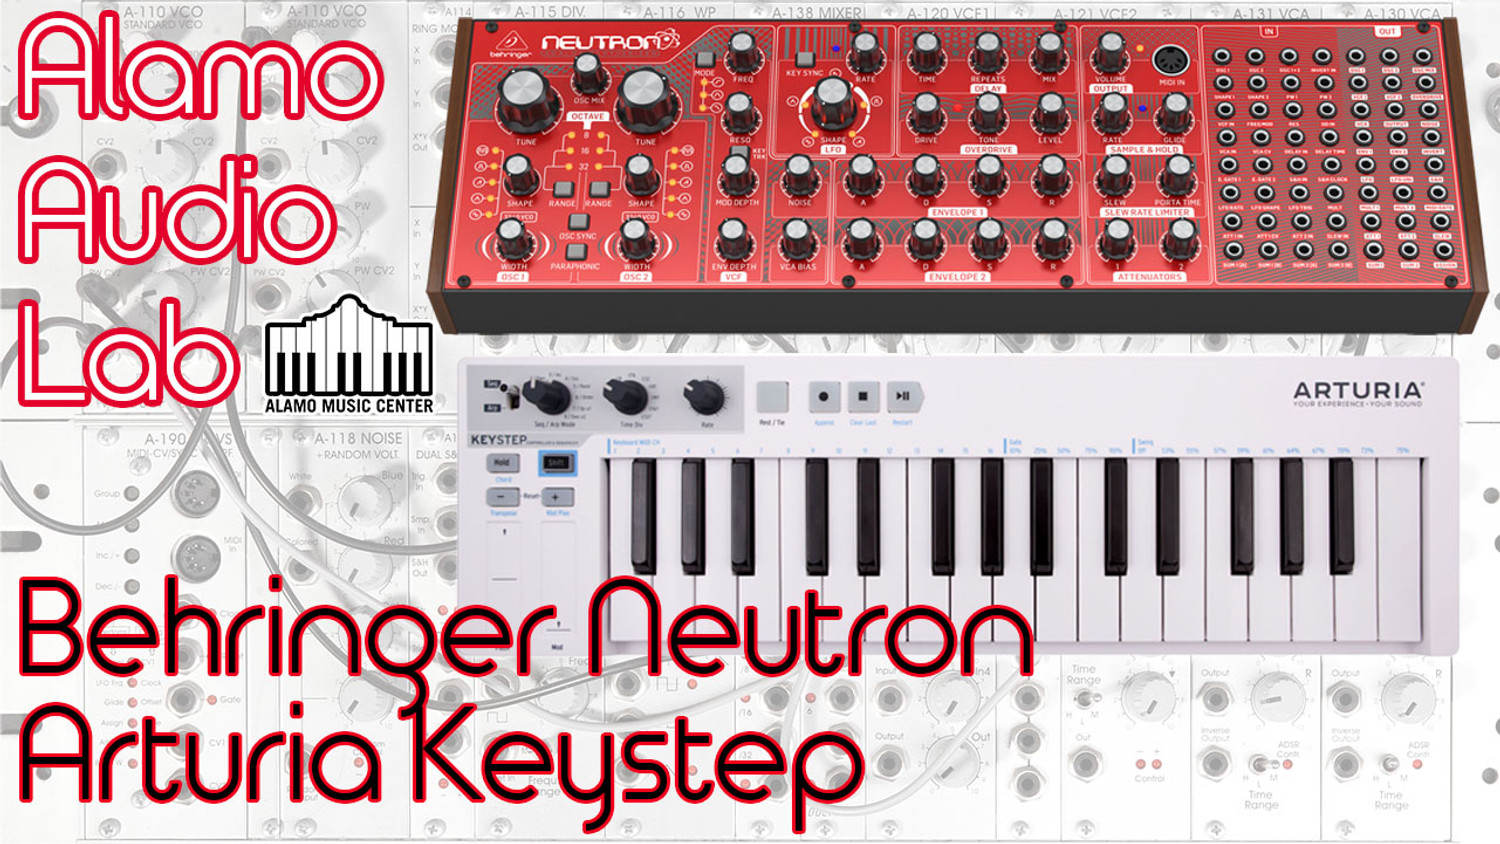 Behringer Neutron & Arturia Keystep - The Best Analog Synth and Controller Combo?